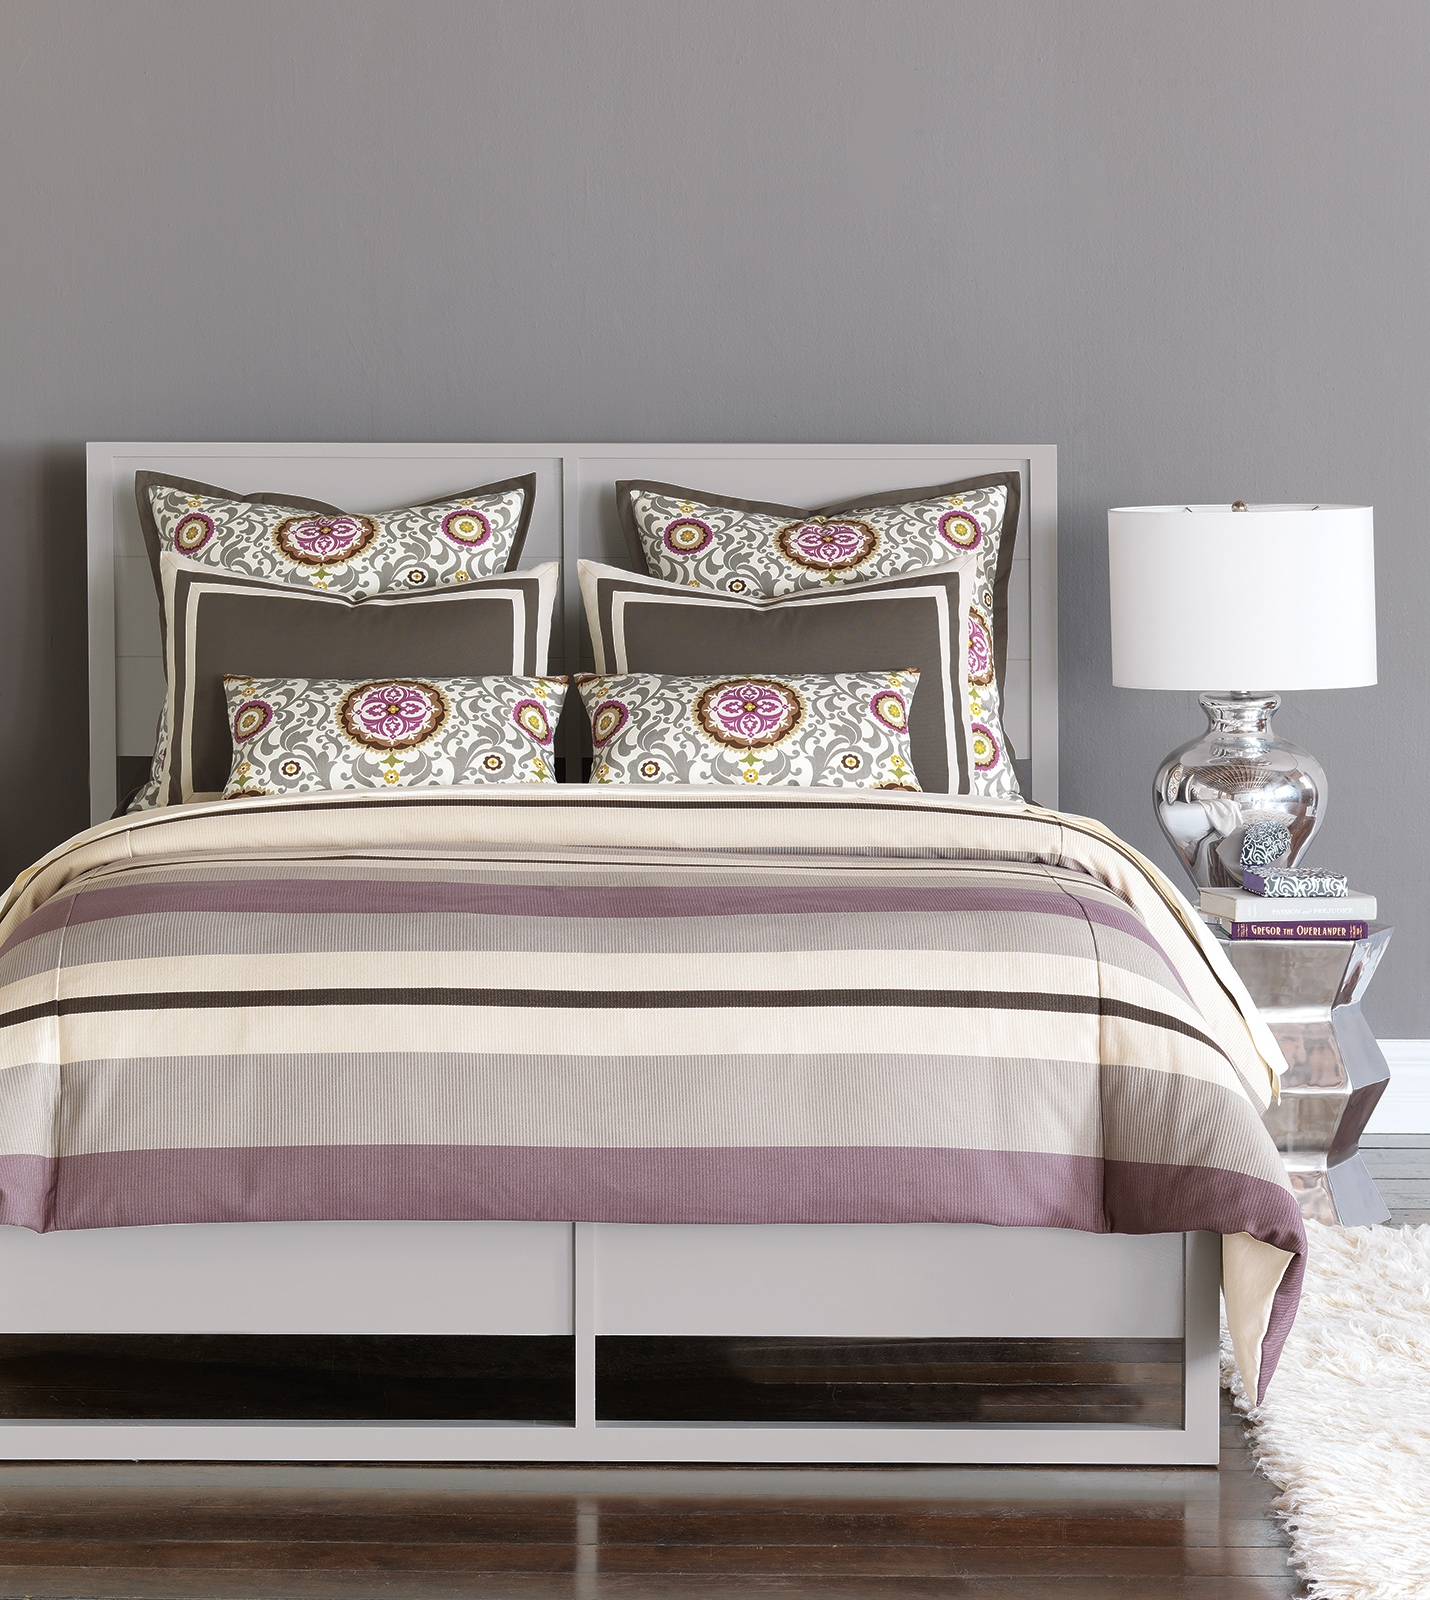 Eastern accents bedding discontinued - Niche Bedding Peugennet Niche Bedding Niche Luxury Bedding By Eastern Accents